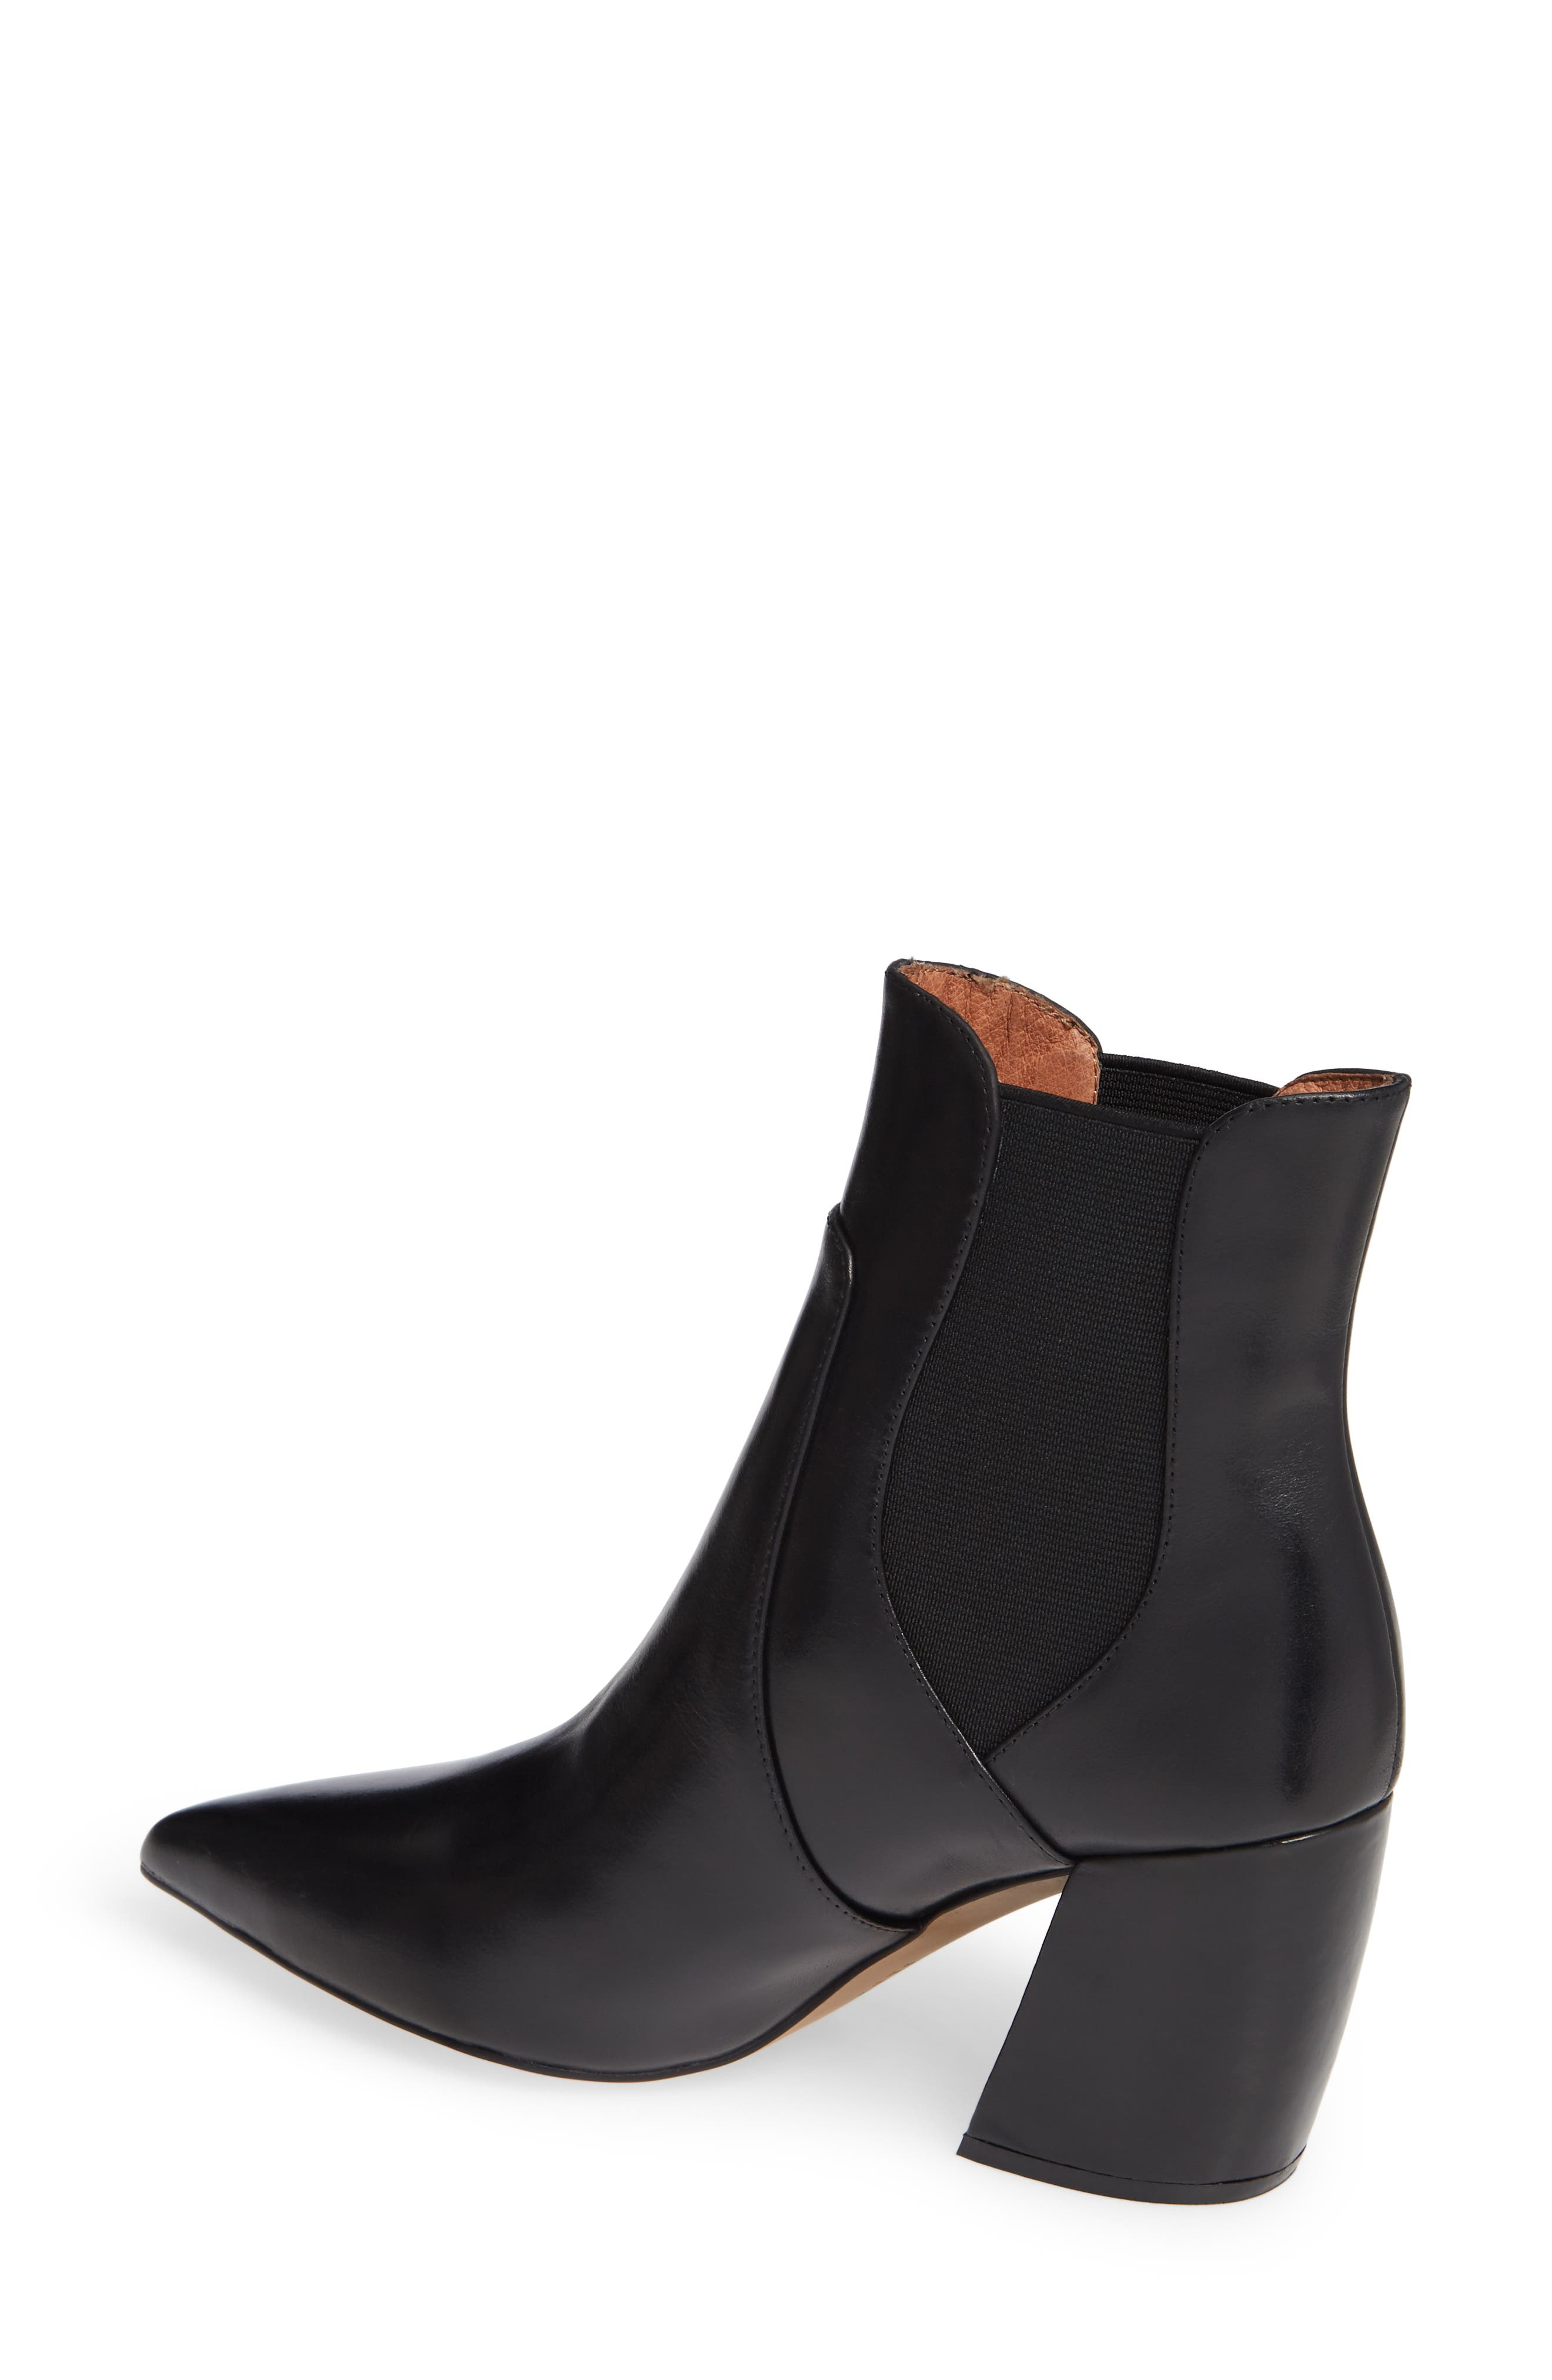 Akilina Bootie,                             Alternate thumbnail 2, color,                             BLACK LEATHER